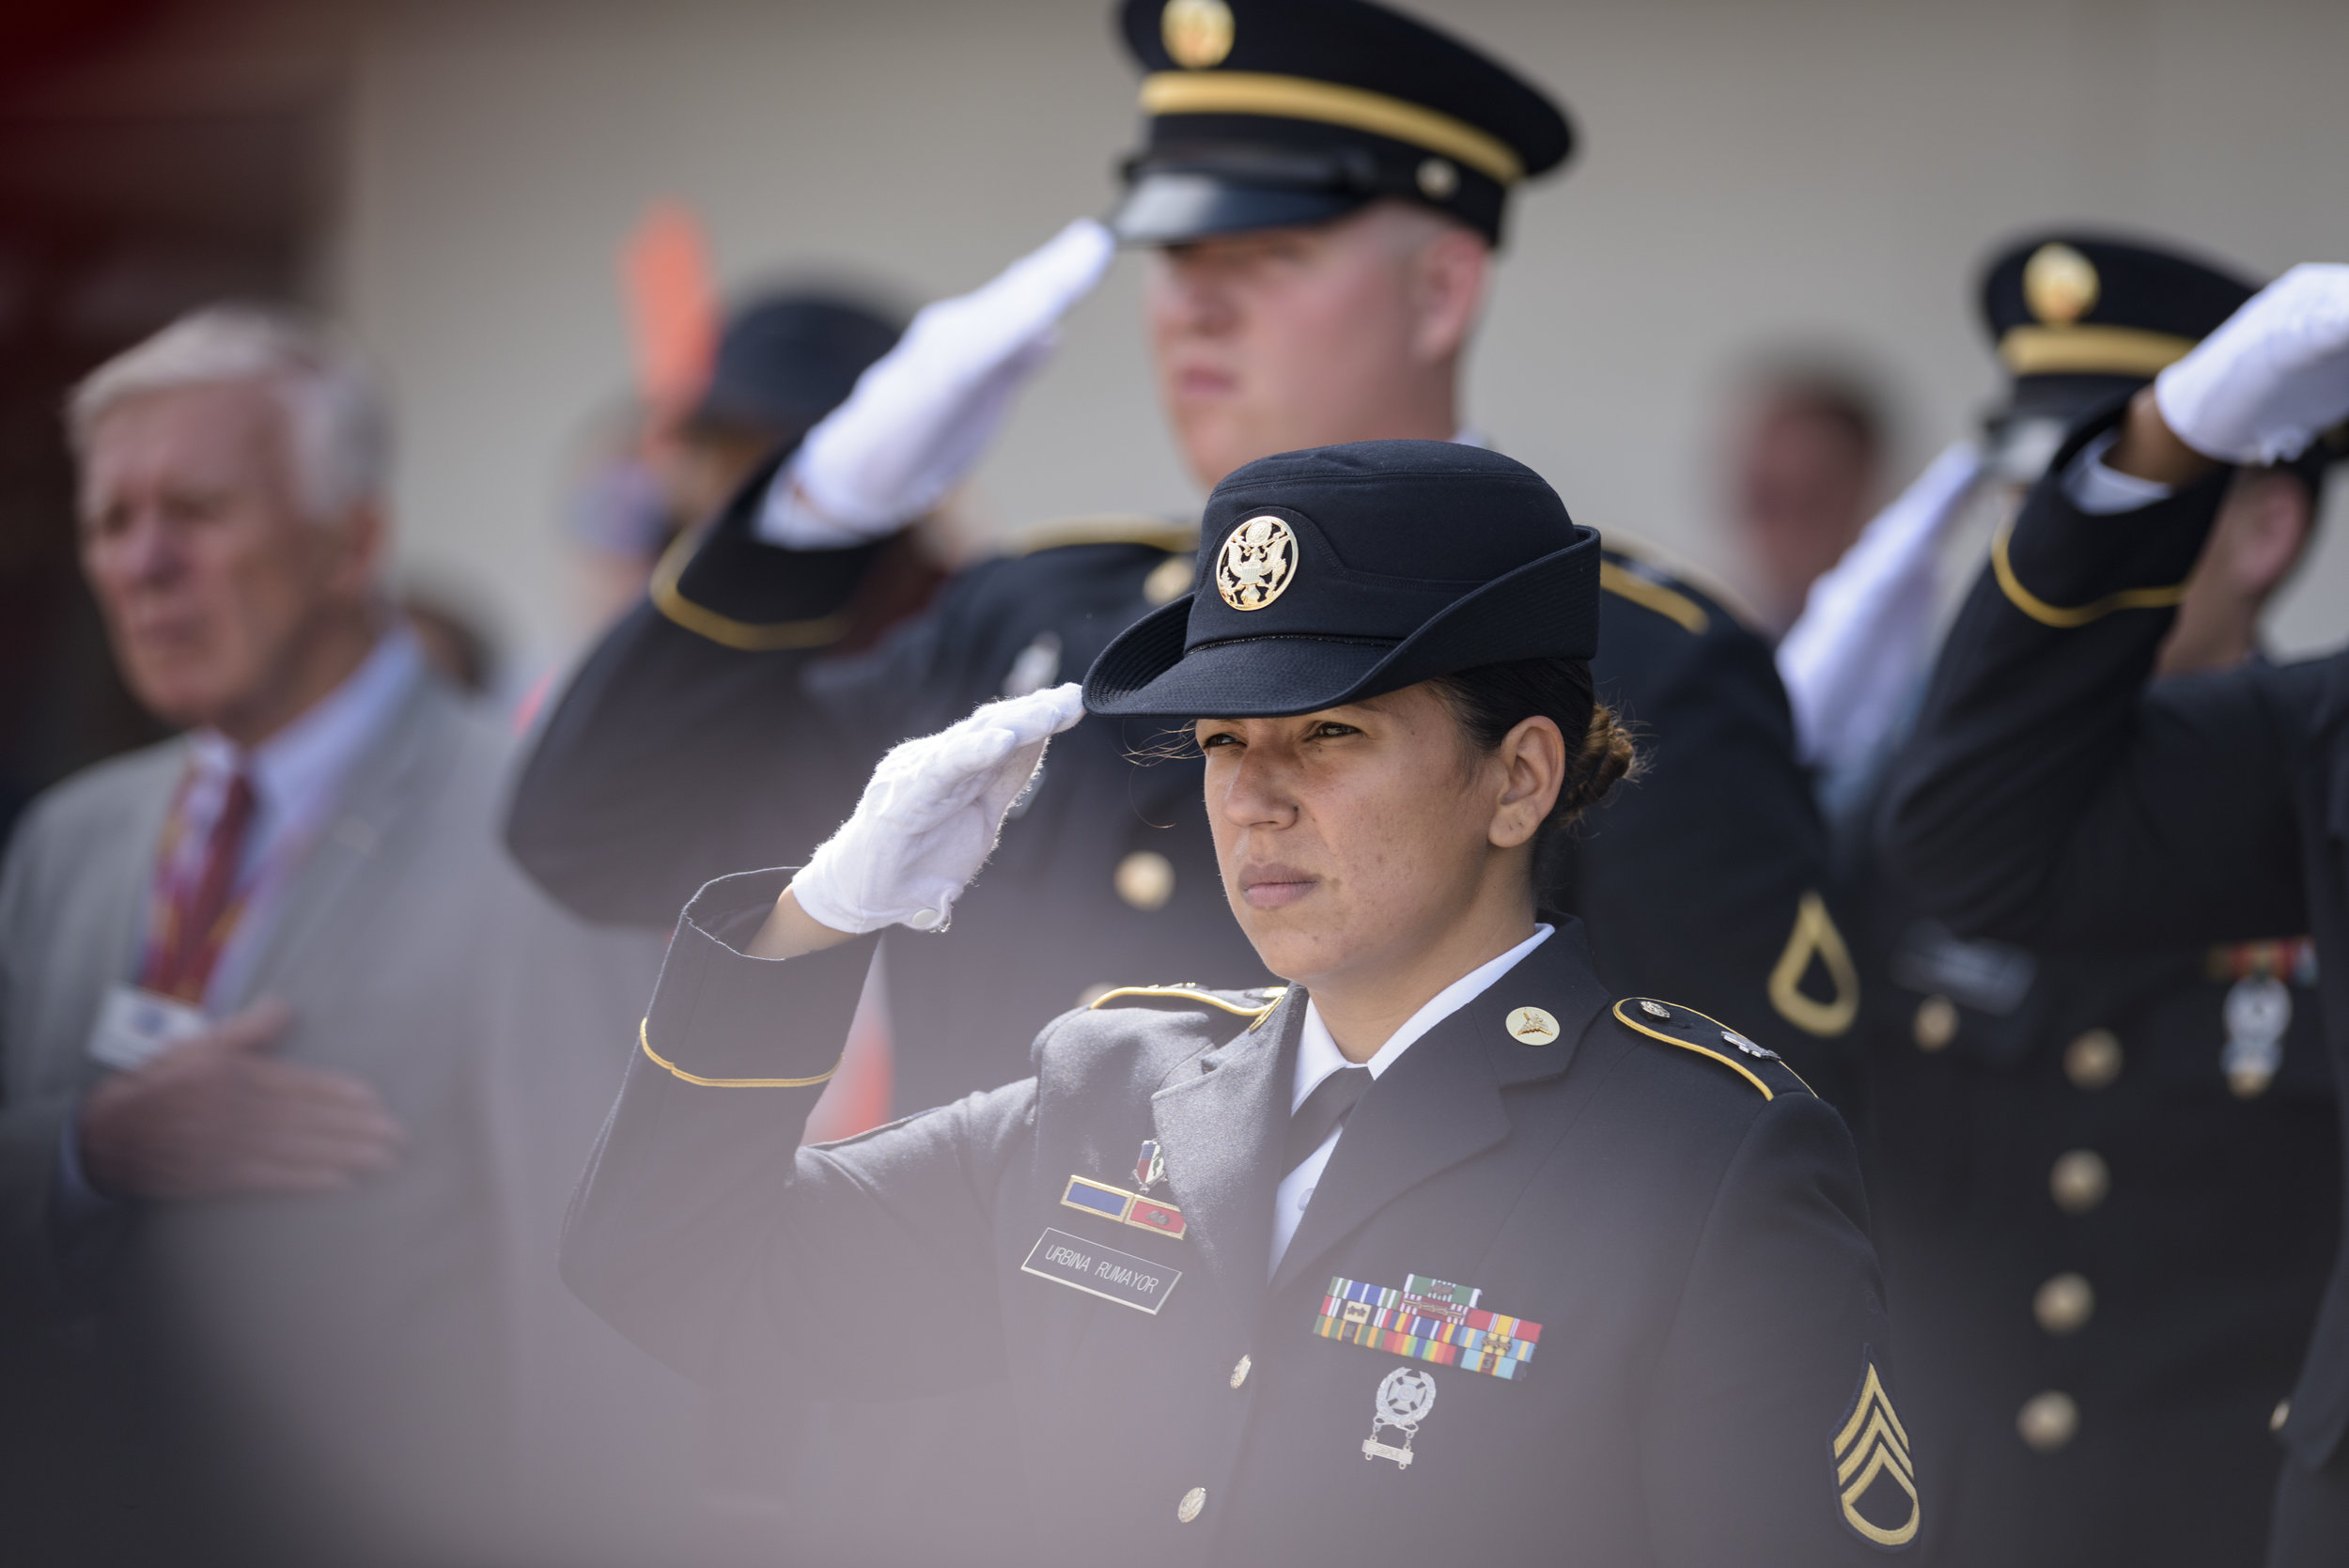 The U.S. Army Color Guard salutes as the remains of Army Pfc. William H. Jones arrive at RDU Airport in Raleigh, NC on June 20, 2019. Jones went missing-in-action during the Korean War on Nov 26, 1950.